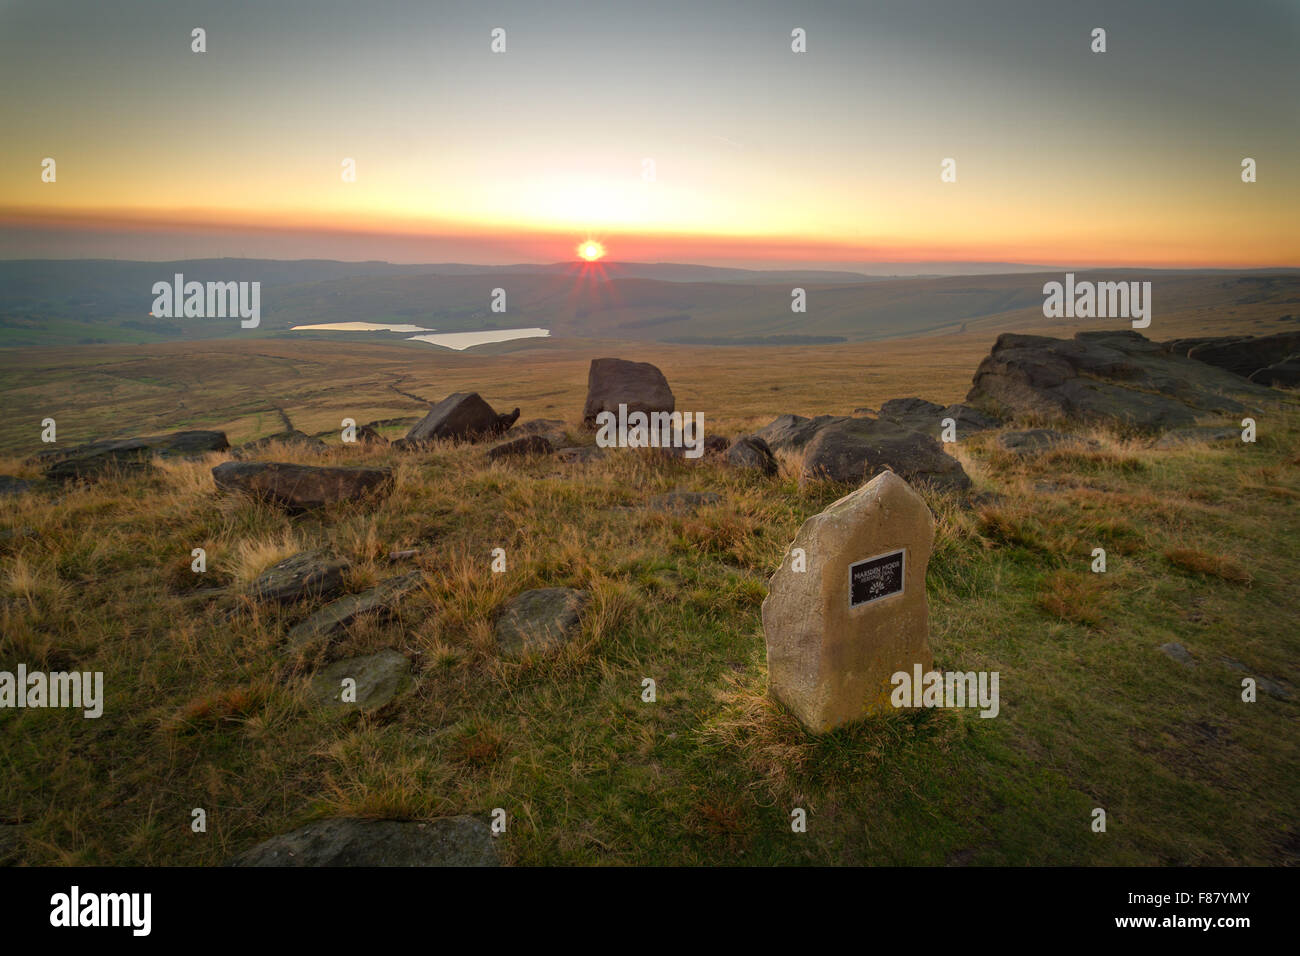 A view over the Castleshaw reservoirs from the milestone on Marsden Moor. - Stock Image